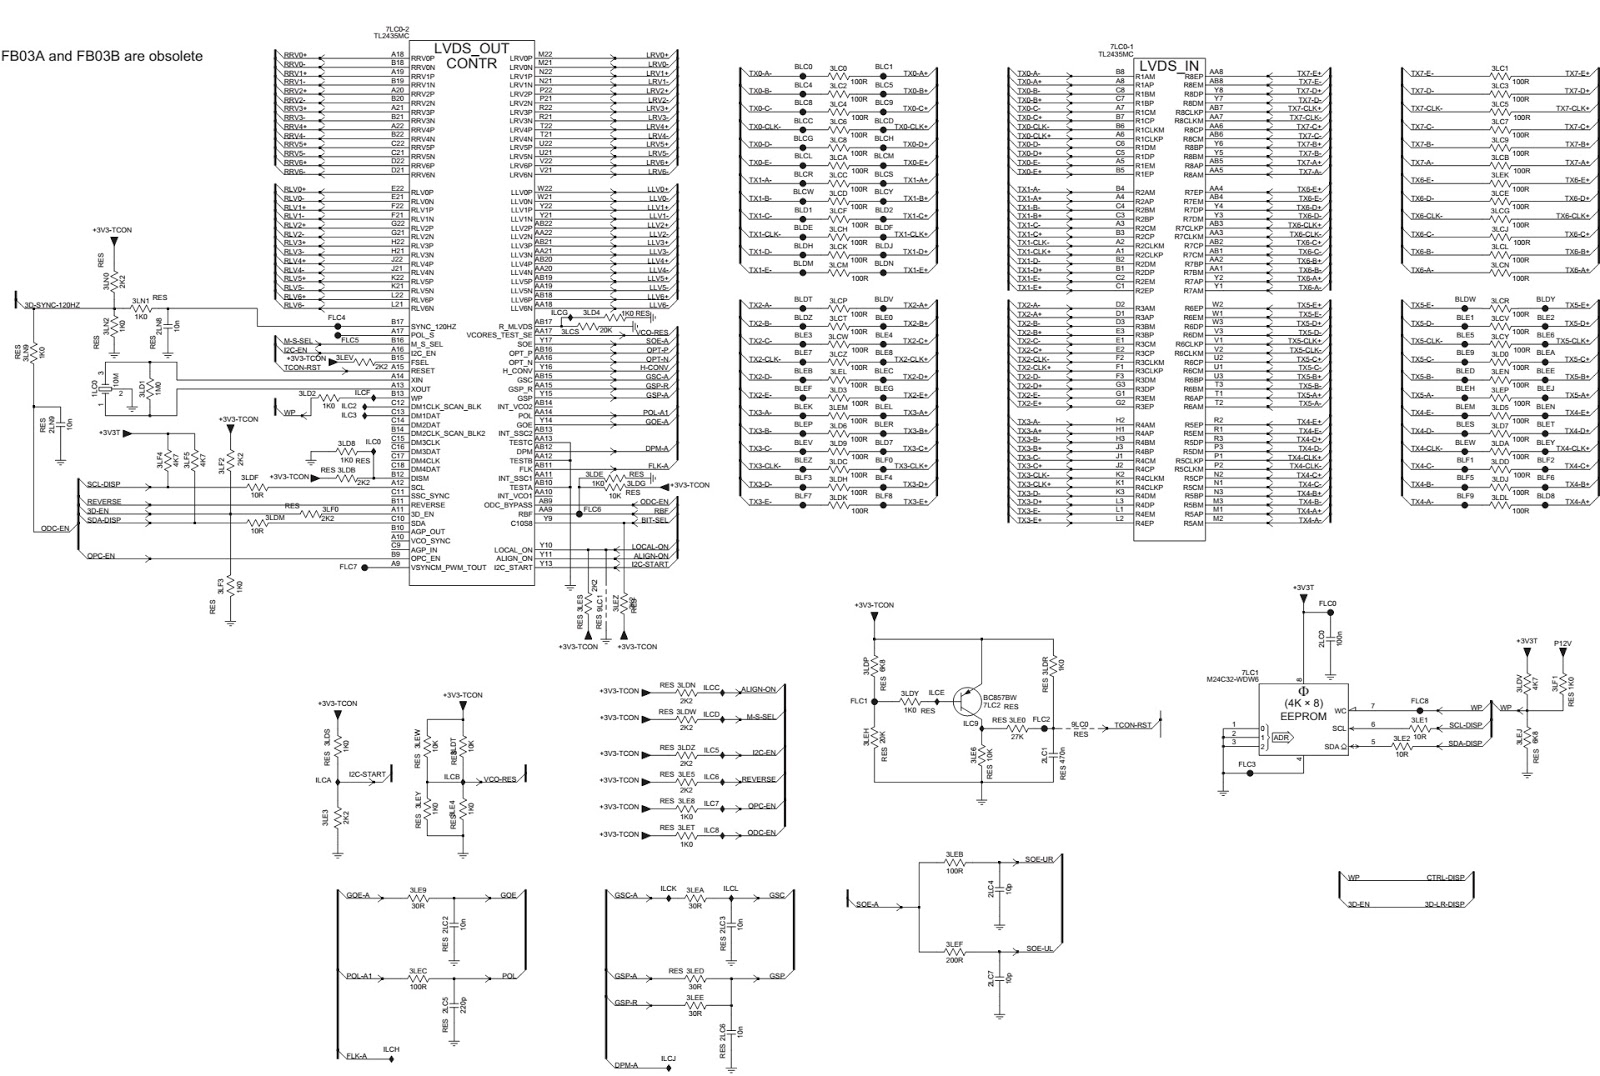 t con board block diagram wiring diagram rh jh pool de